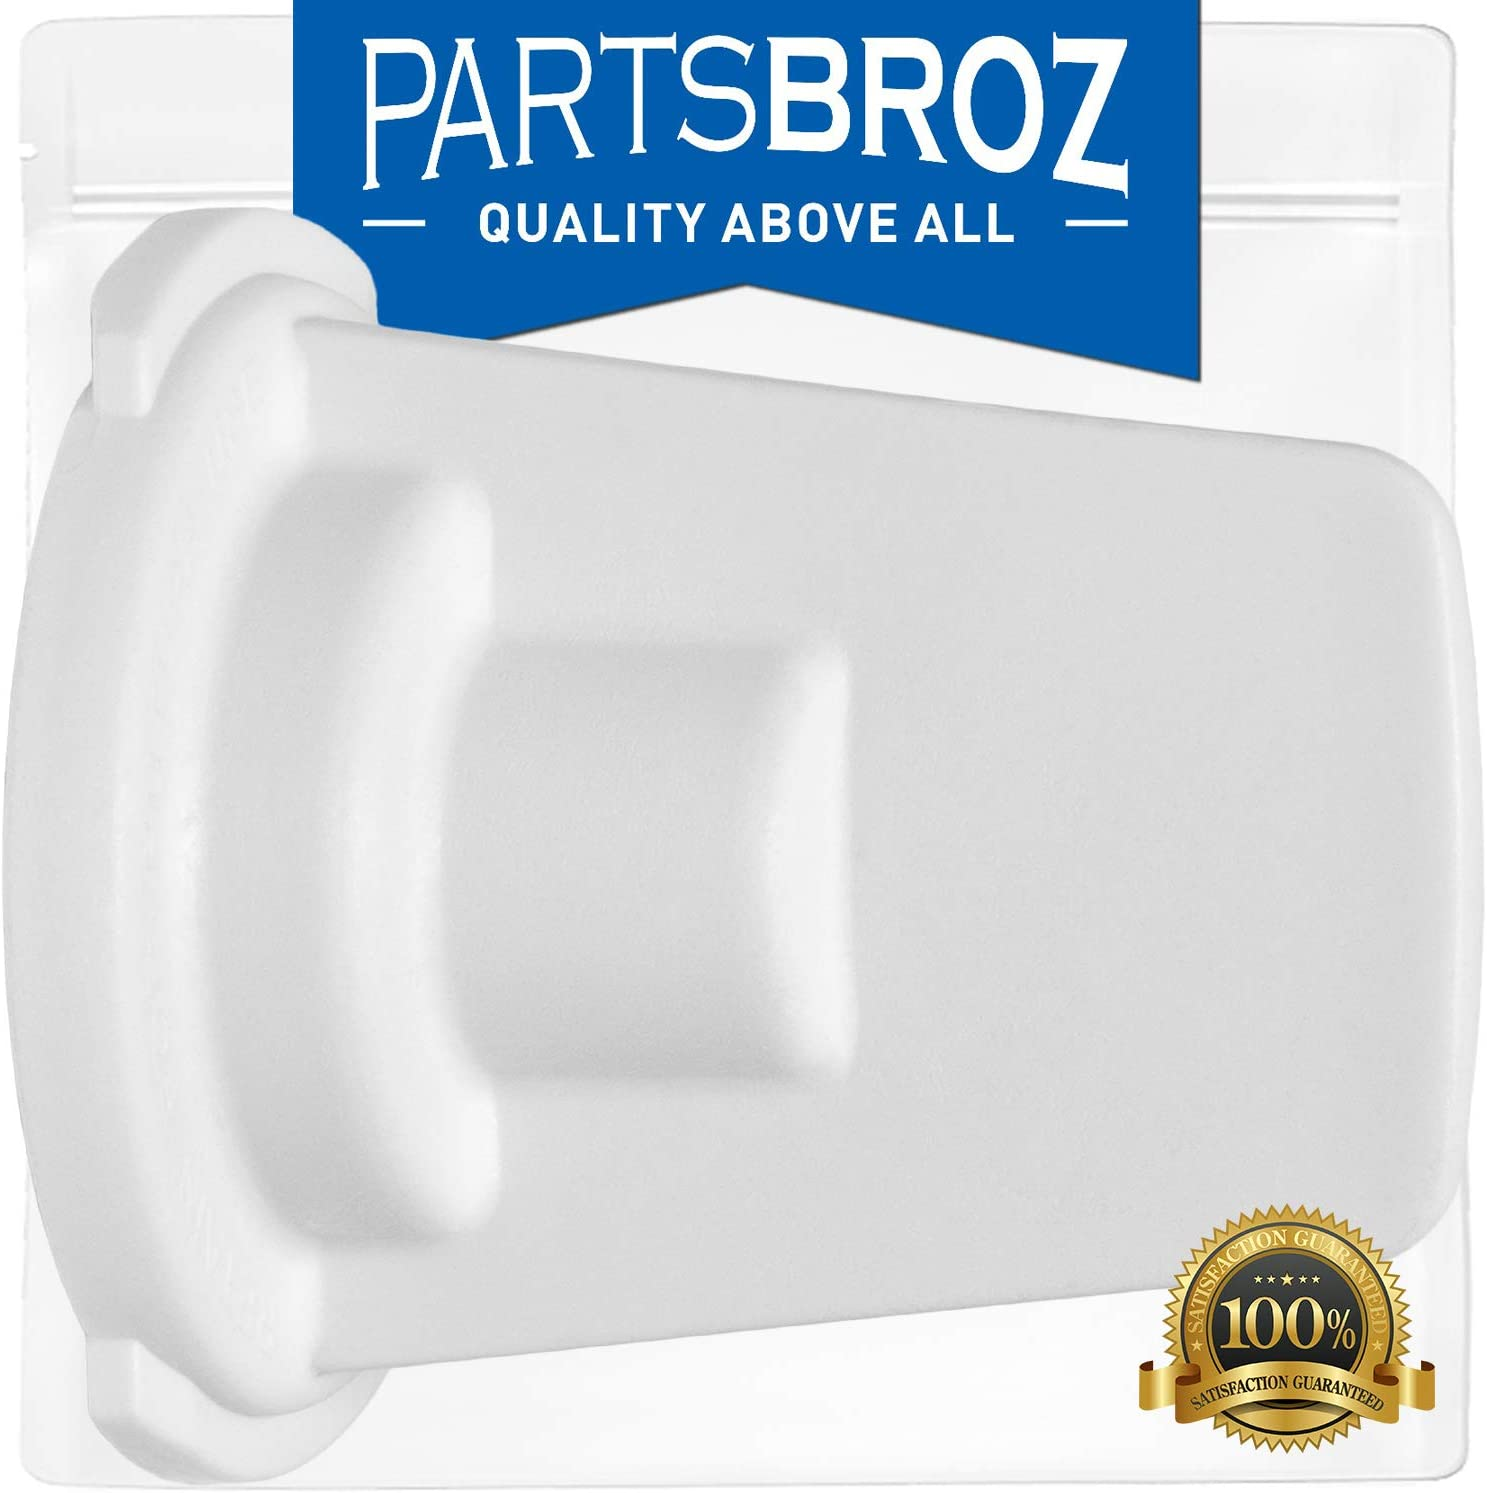 WR02X11705 Water Filter Bypass Cap for GE Refrigerators by PartsBroz - Replaces Part Numbers AP3425999, 1038637, AH783756, EA783756, PS783756, WR02X10577, WR2X10577